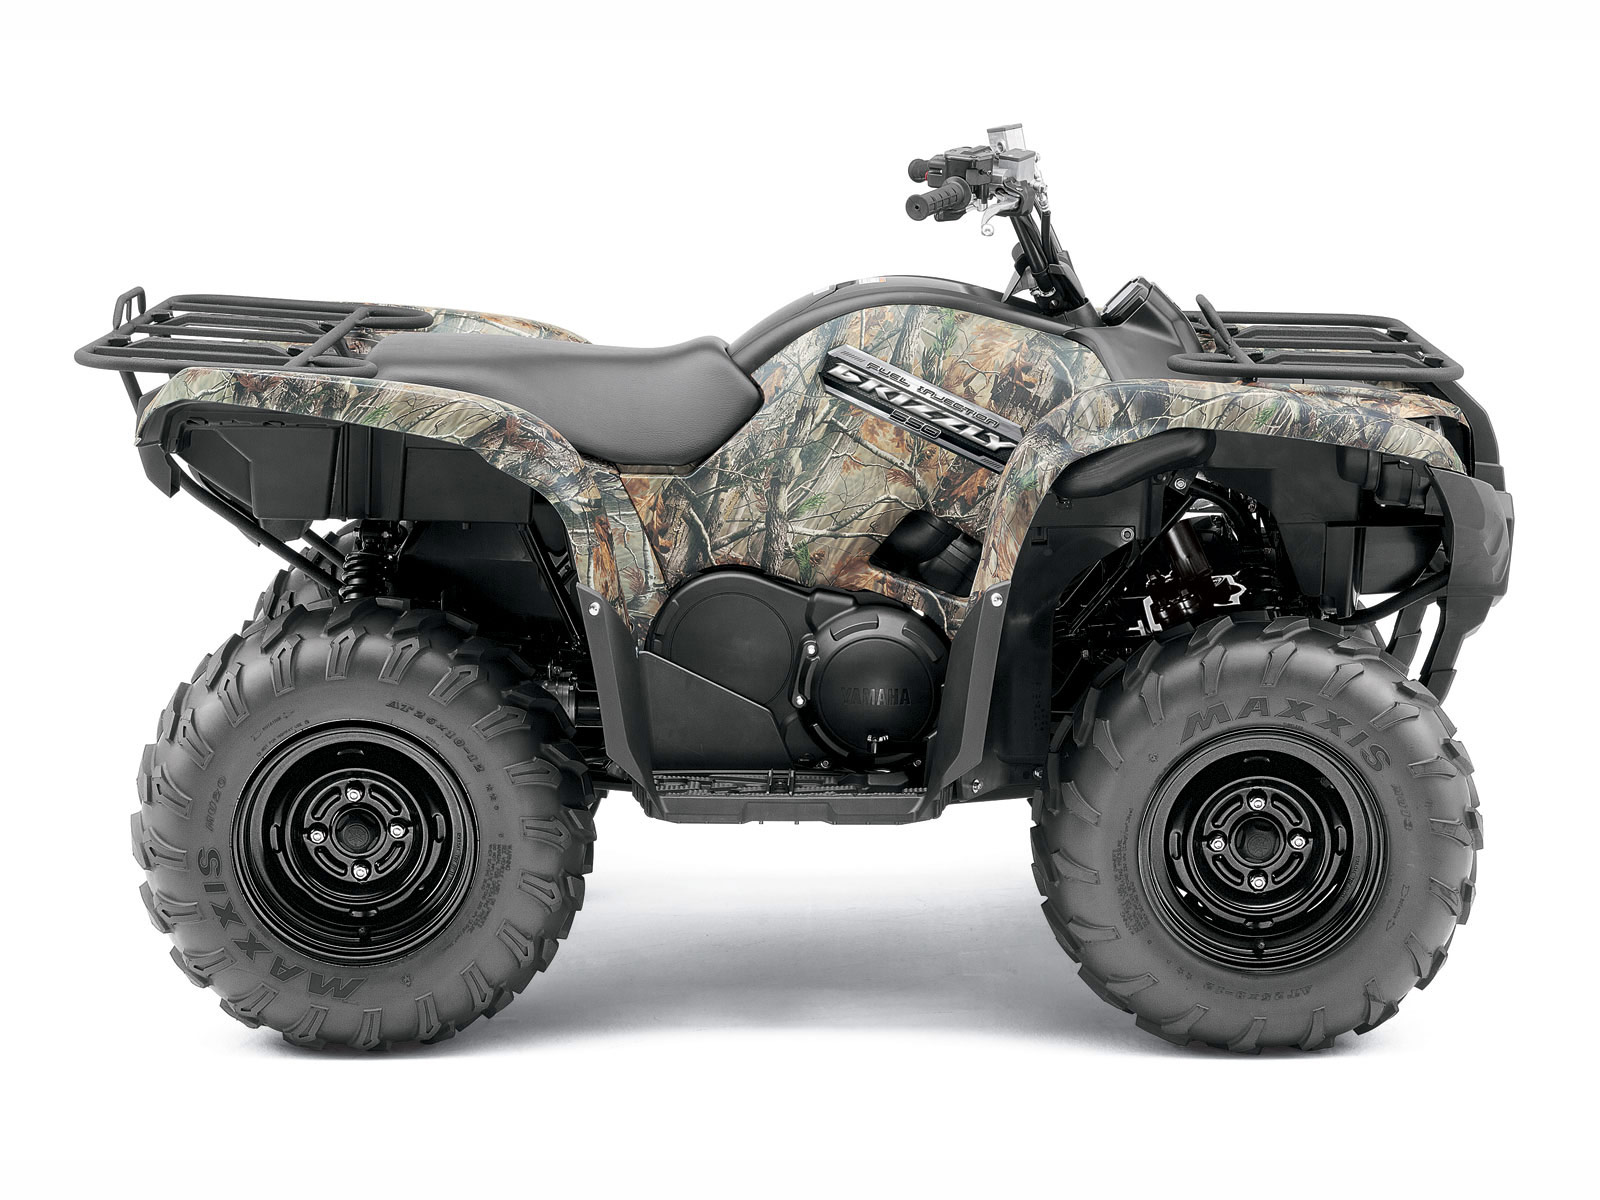 2012 yamaha grizzly 550 fi auto 4x4 atv pictures for Yamaha grizzly 4x4